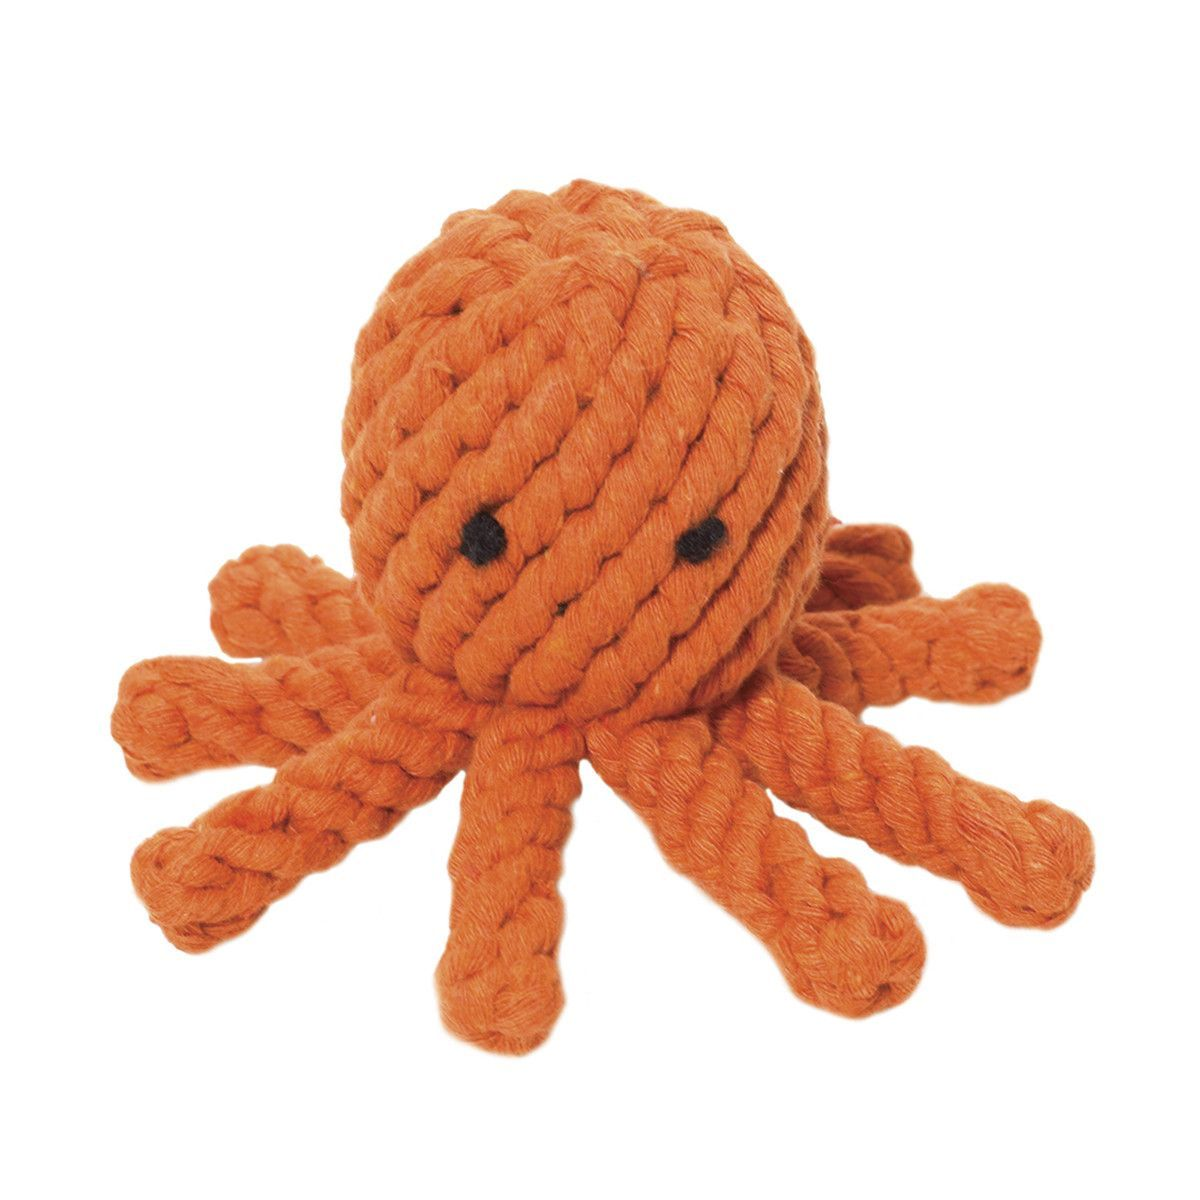 Oliver the Octopus